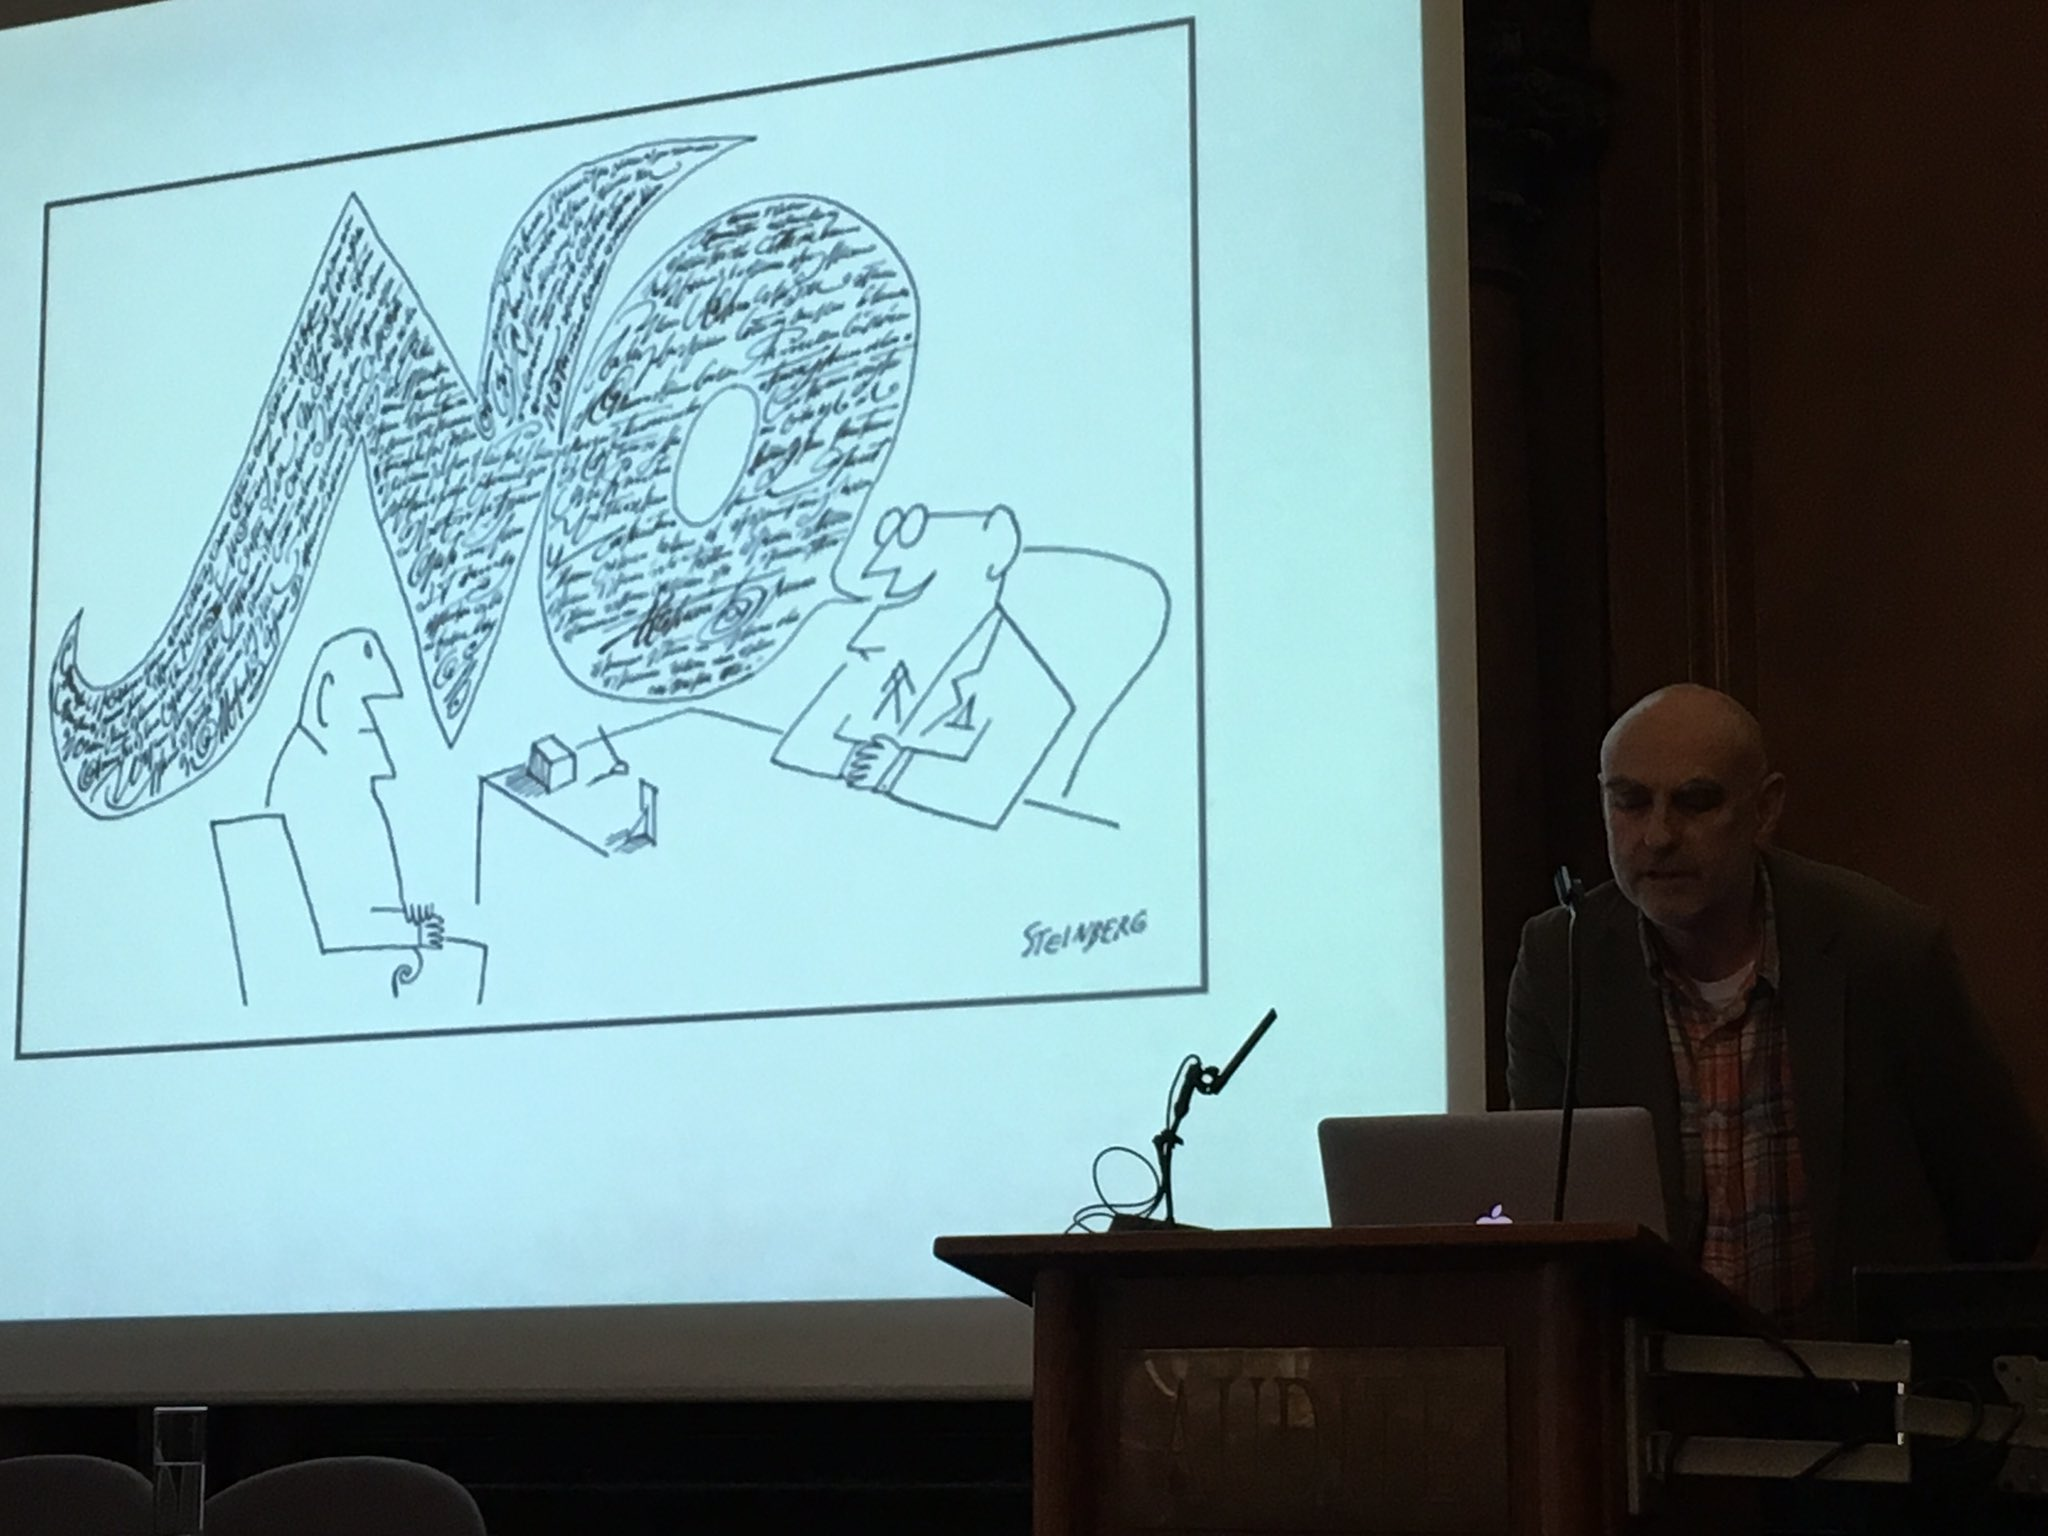 Martin Salisbury on visual thinking - this image represents many departmental meetings most succinctly! #IBBYPictures https://t.co/urSwz3TMmQ